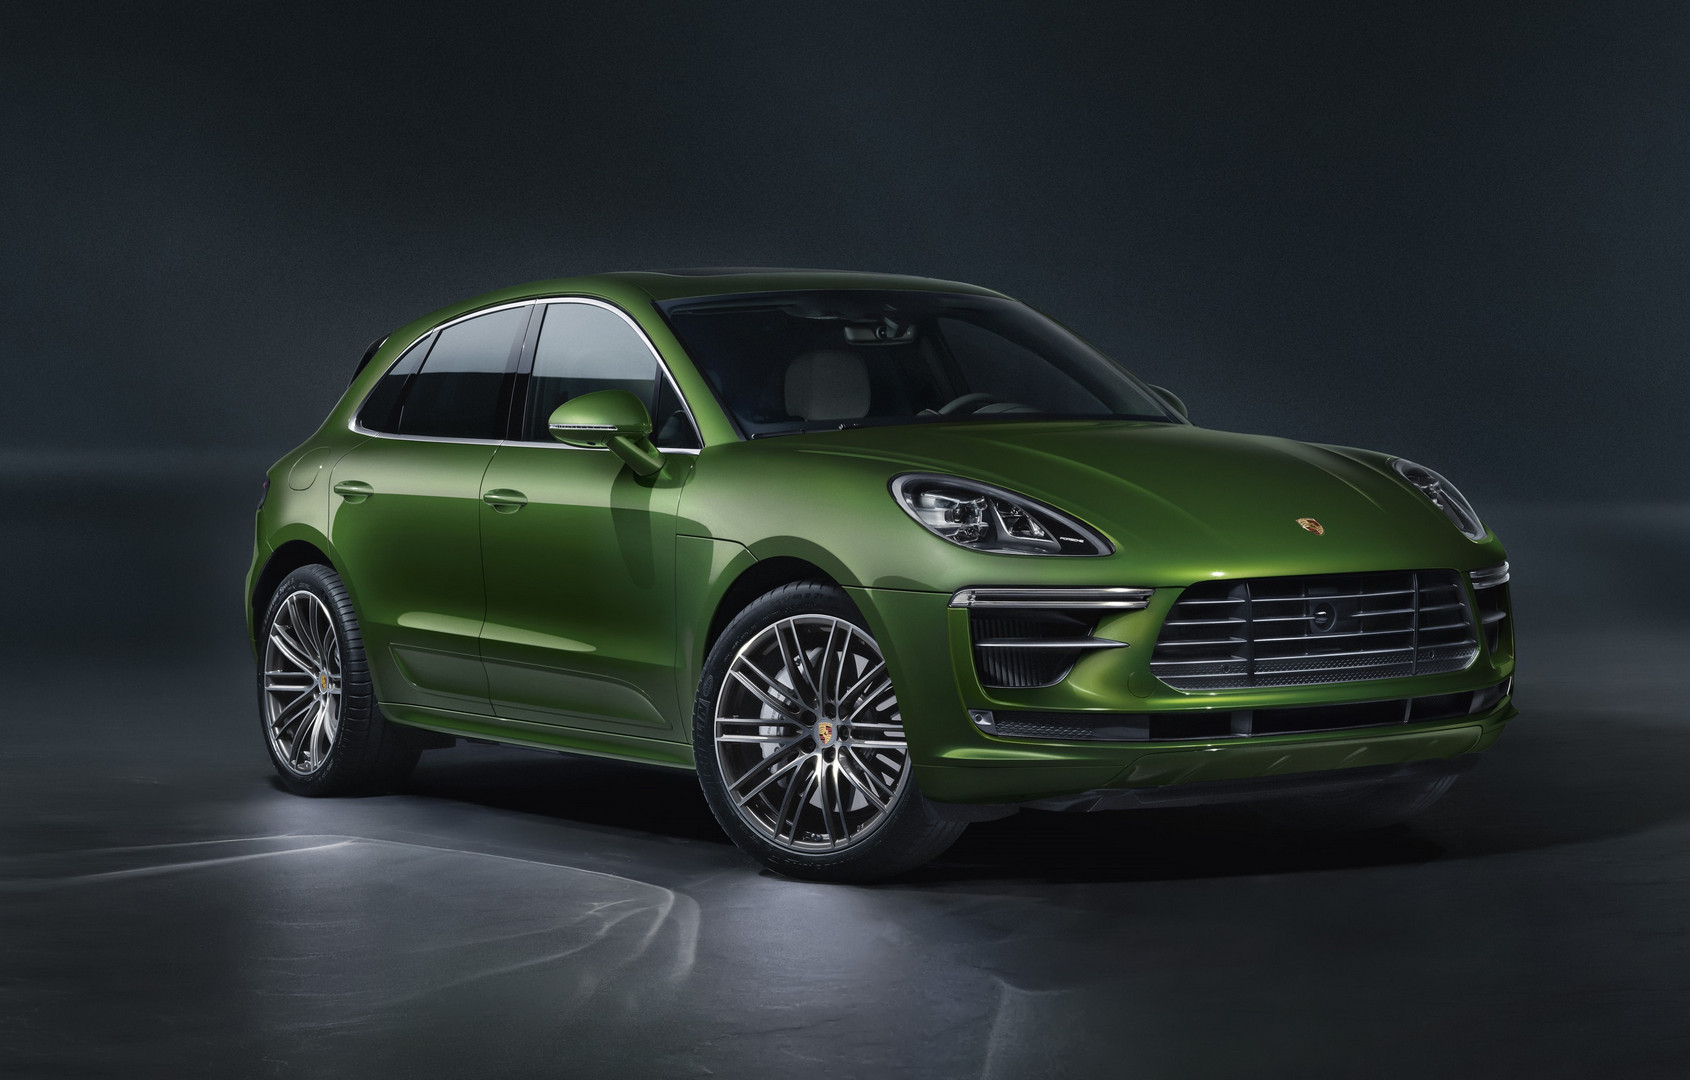 2020 Porsche Macan Turbo Revealed with 440hp